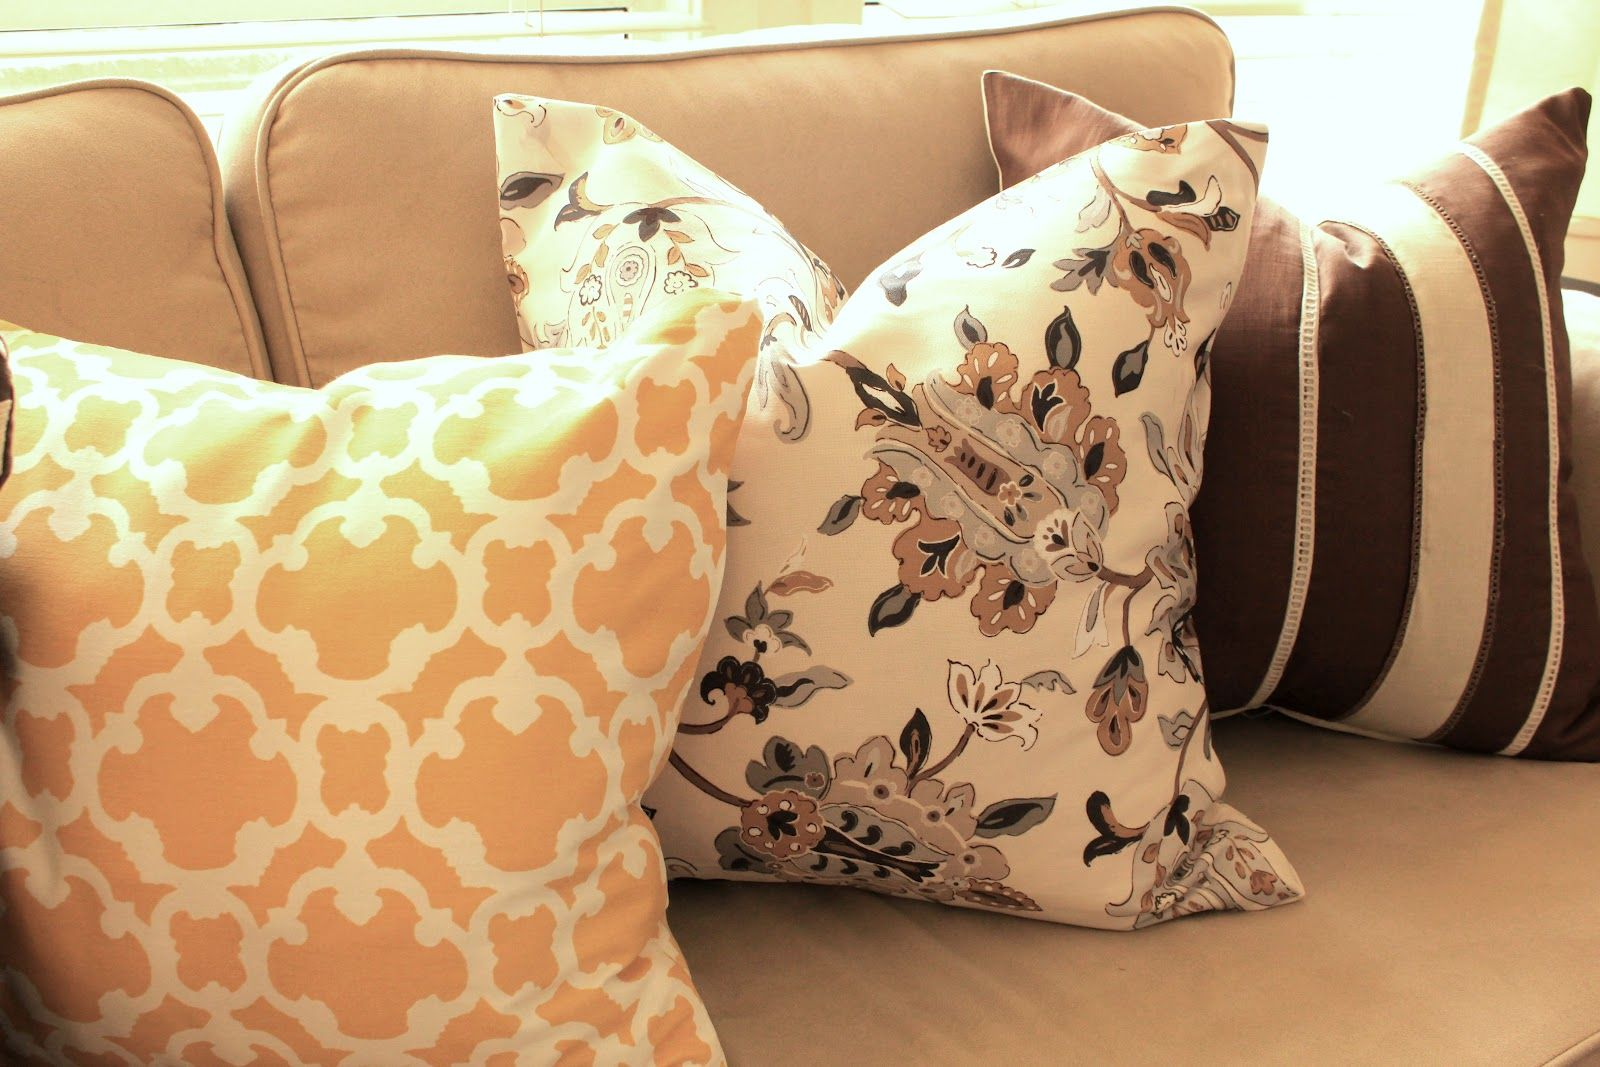 Make Throw Pillow Cover Without Sewing : Cup Half Full: DIY - No Sew Throw Pillows For the Home ...